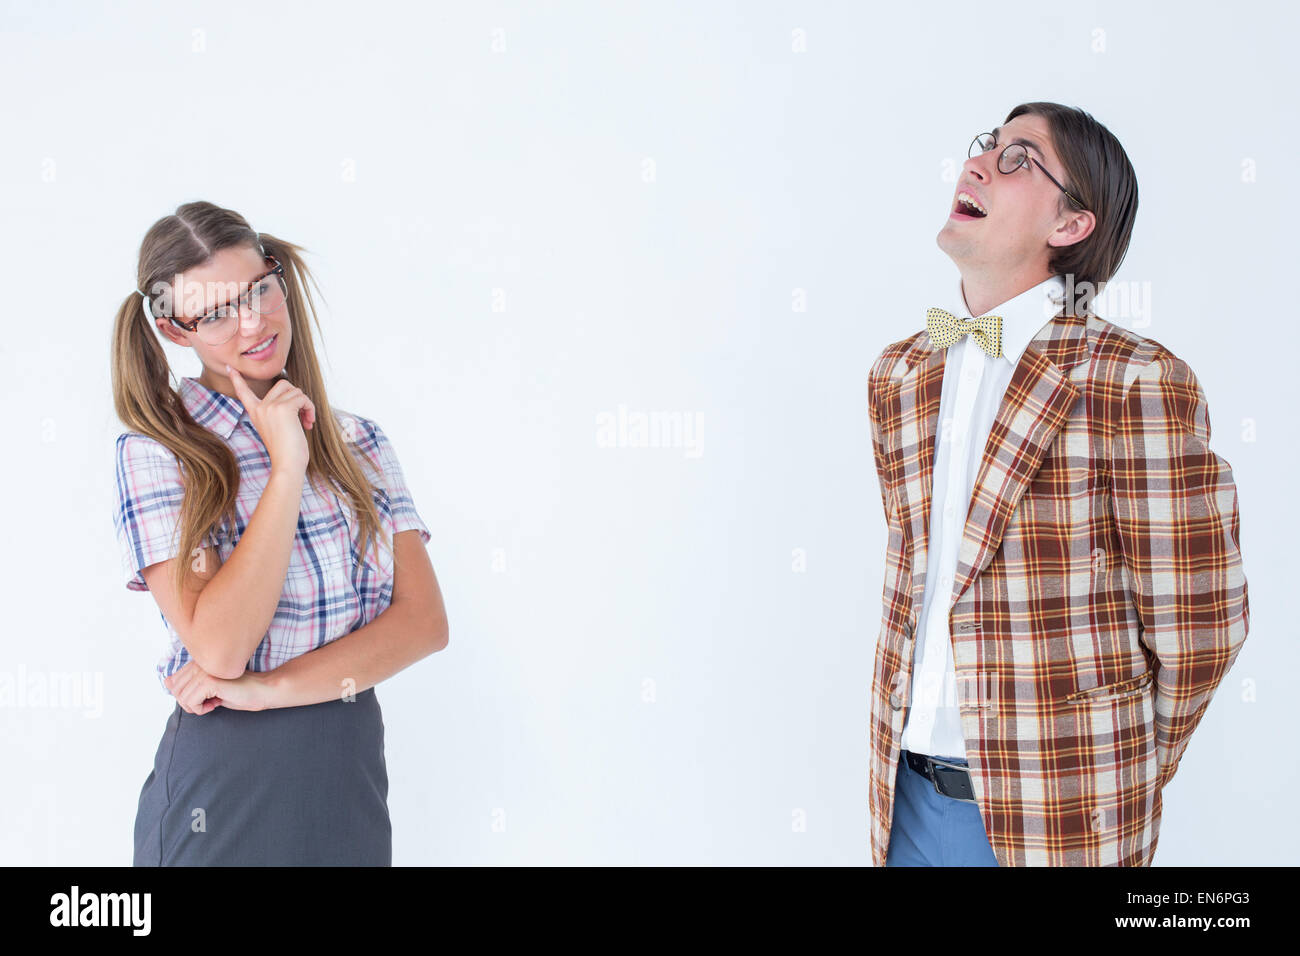 Thoughtful geeky hipsters - Stock Image